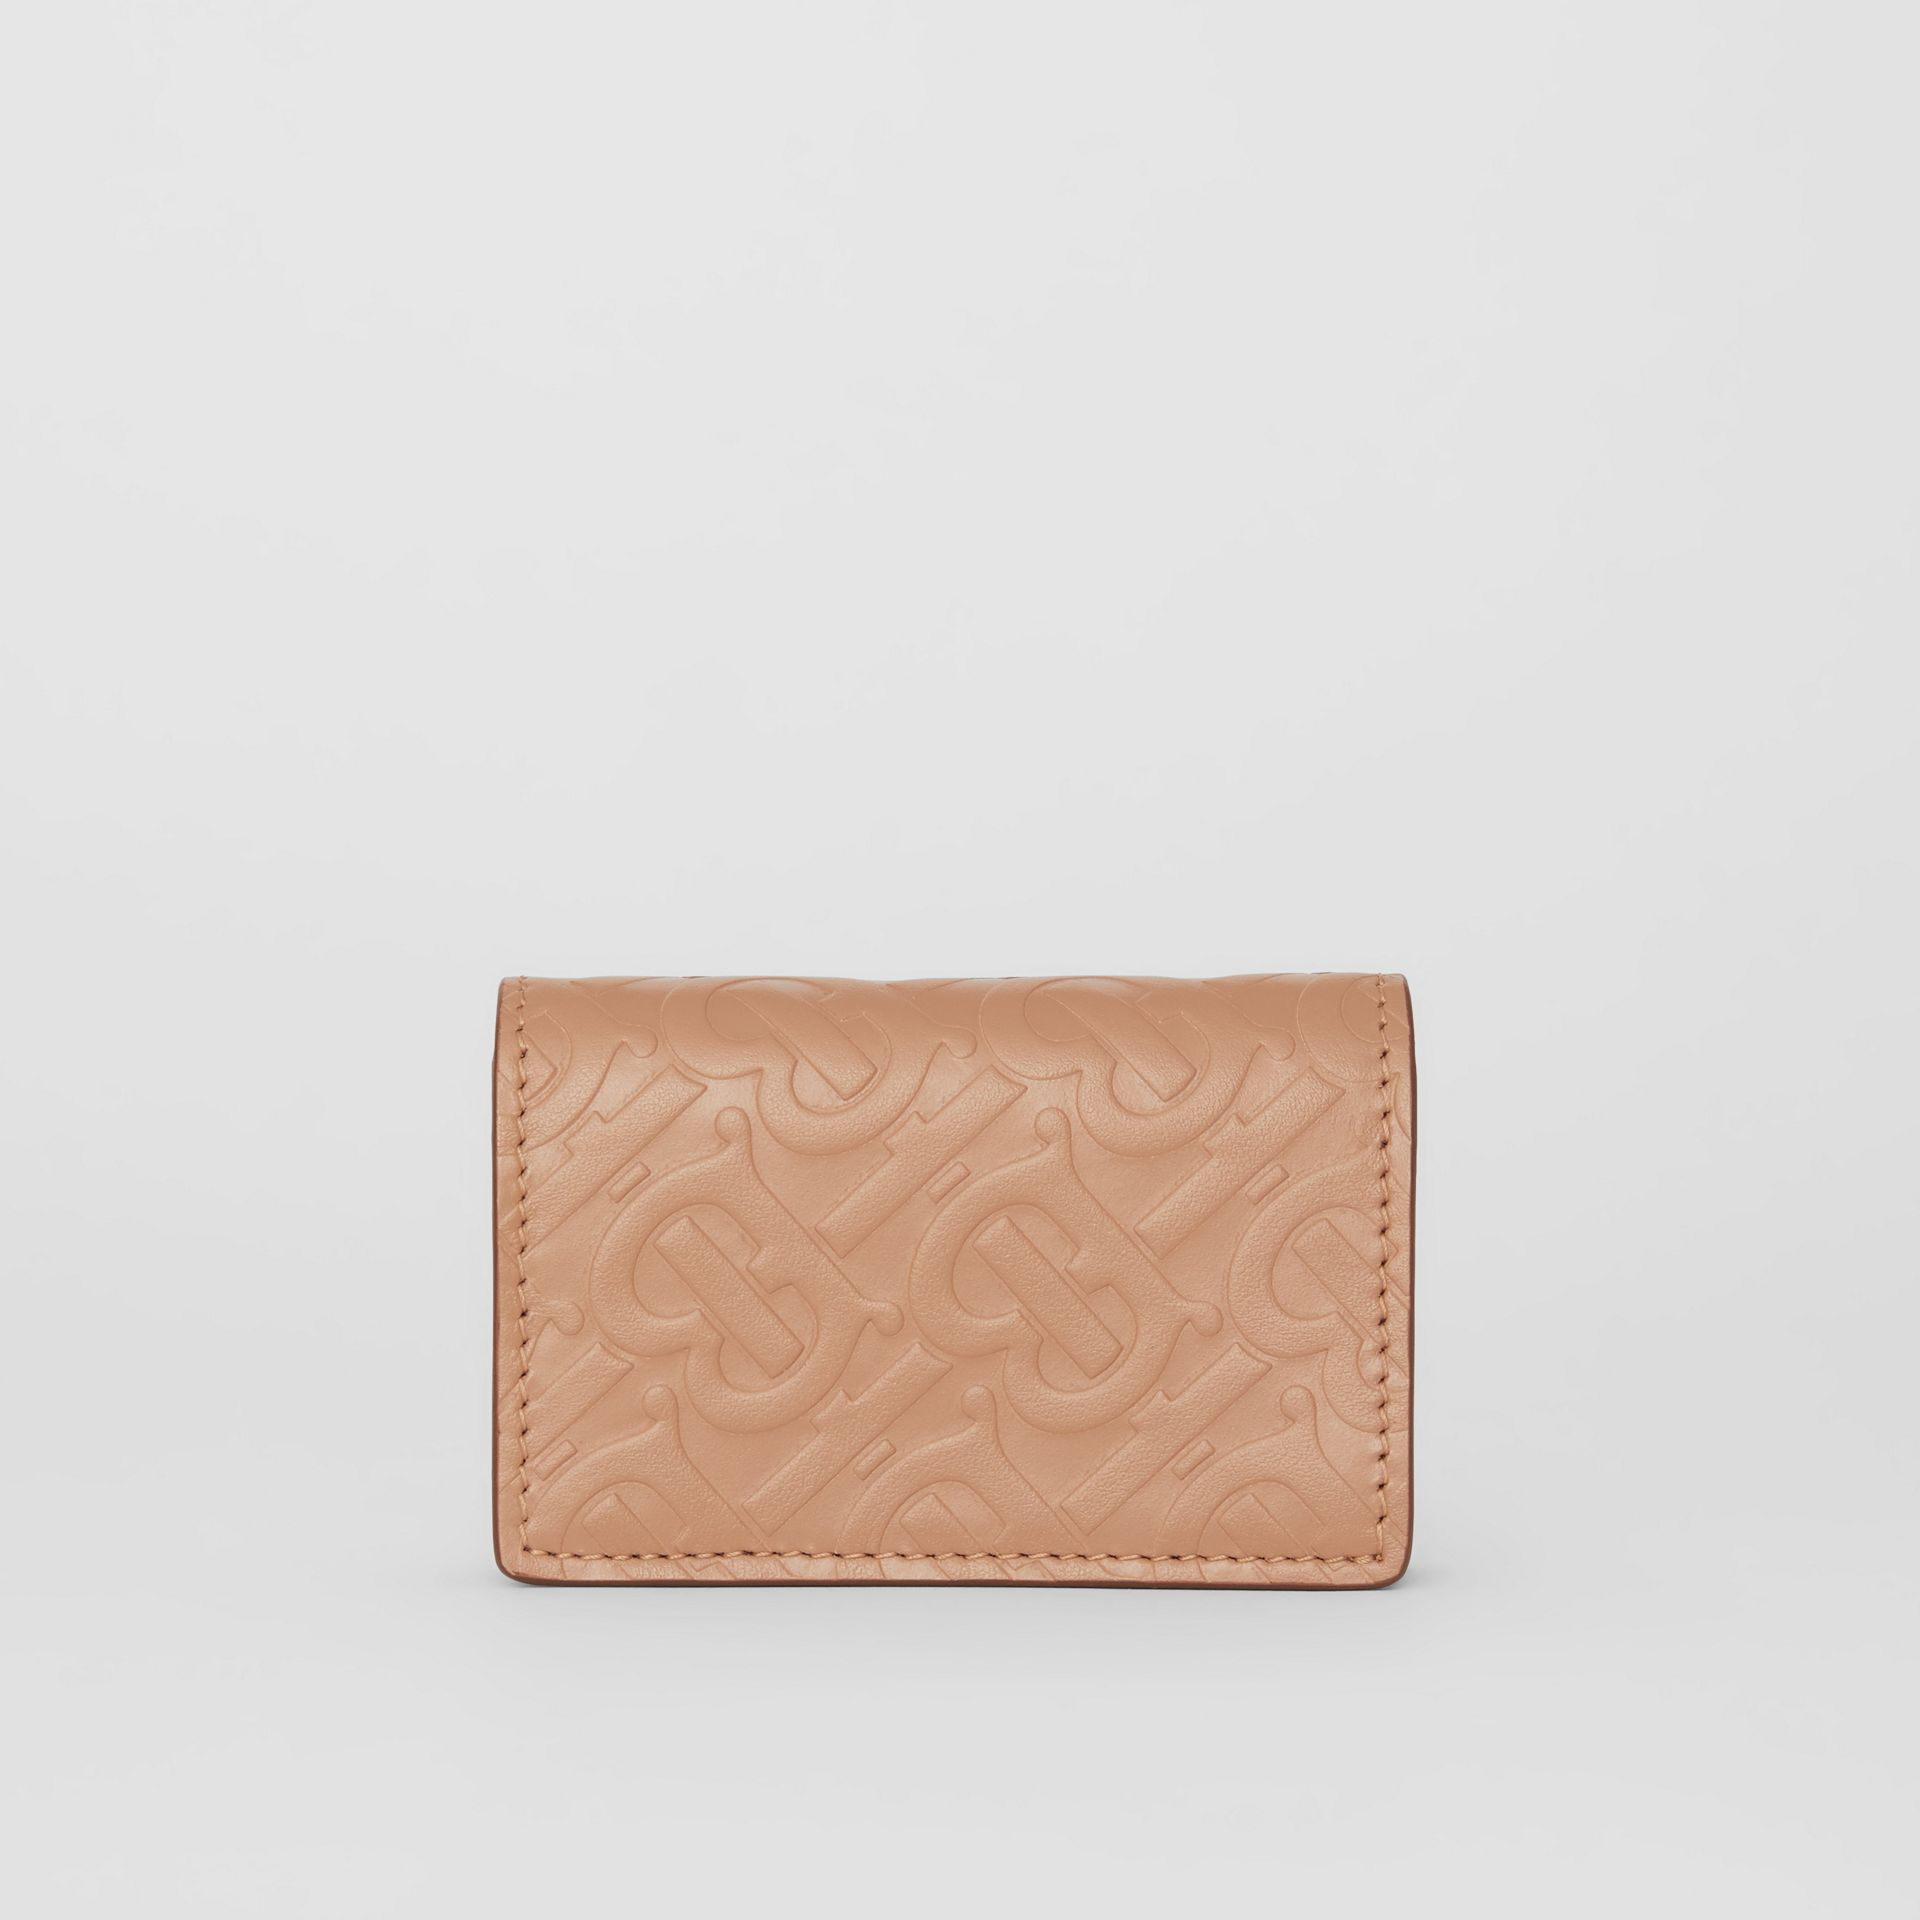 Monogram Leather Card Case in Light Camel - Women | Burberry United Kingdom - gallery image 4